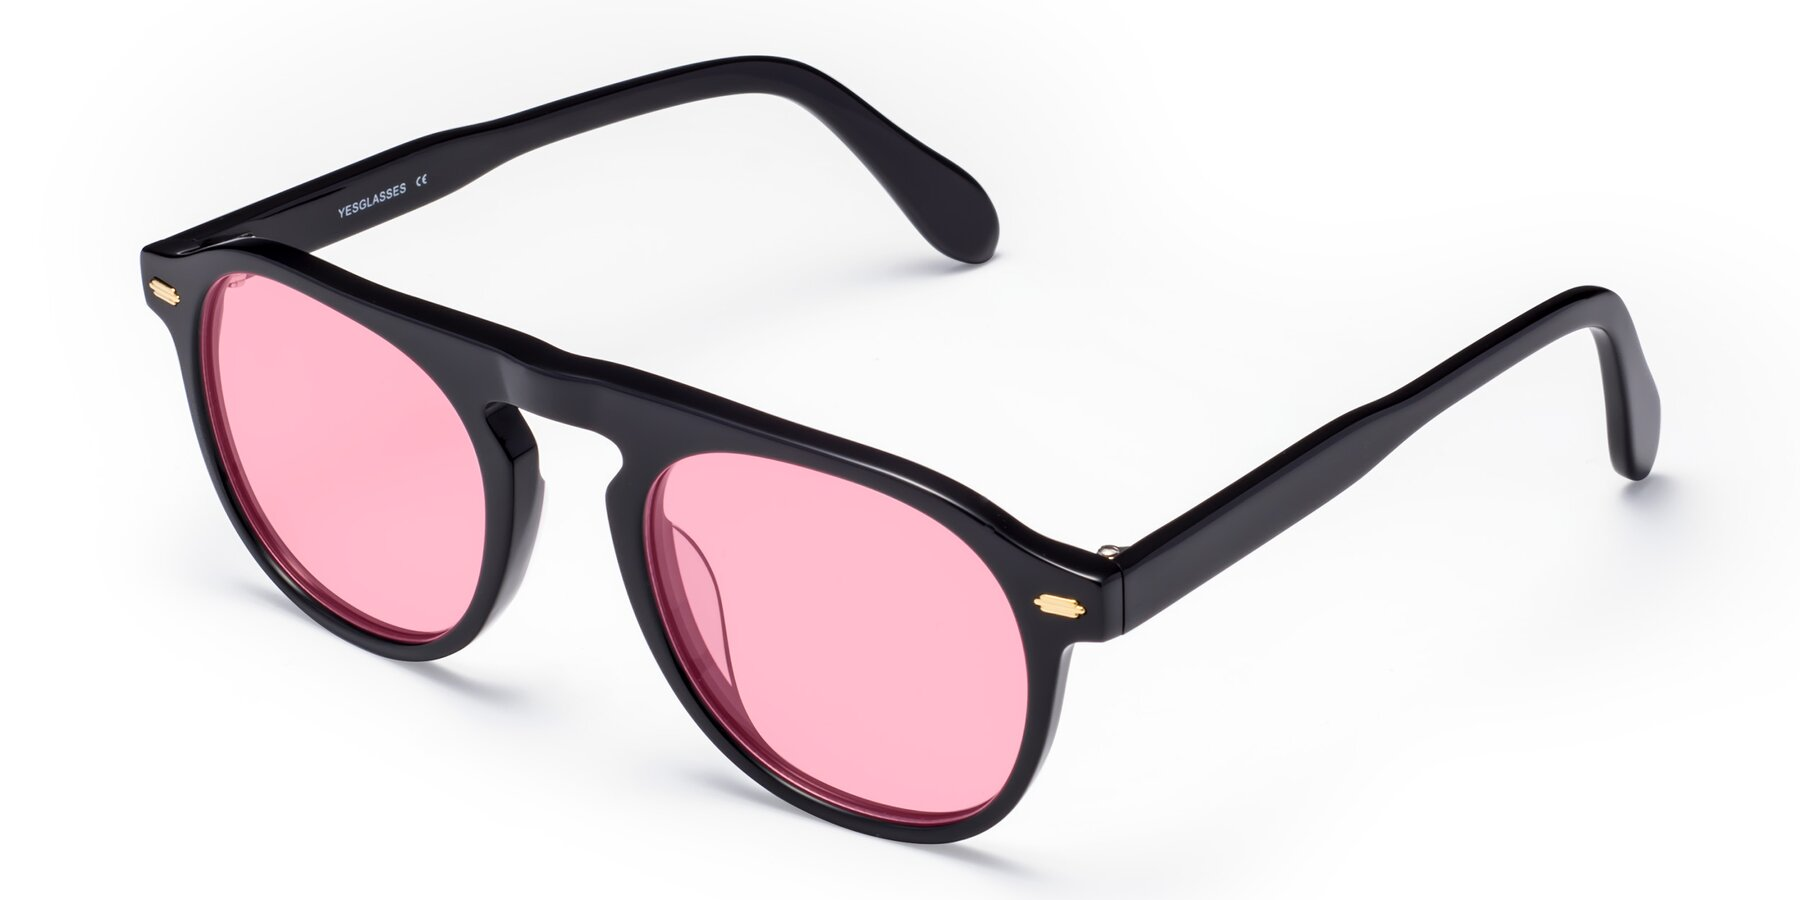 Angle of Mufasa in Black with Medium Pink Tinted Lenses